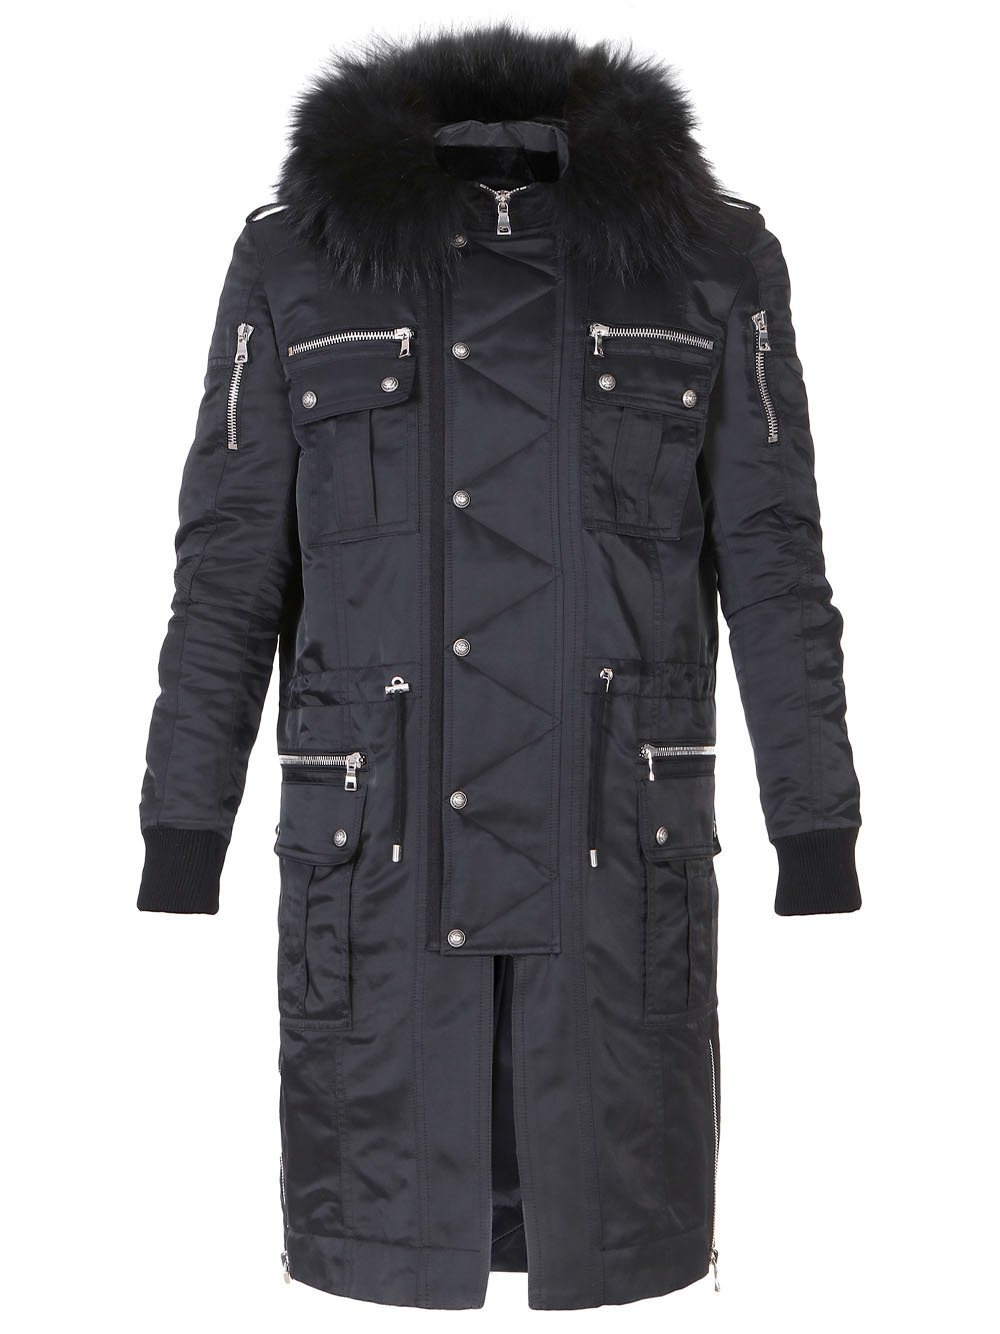 BALMAIN Buttoned Parka Coat With Fur Hood Black